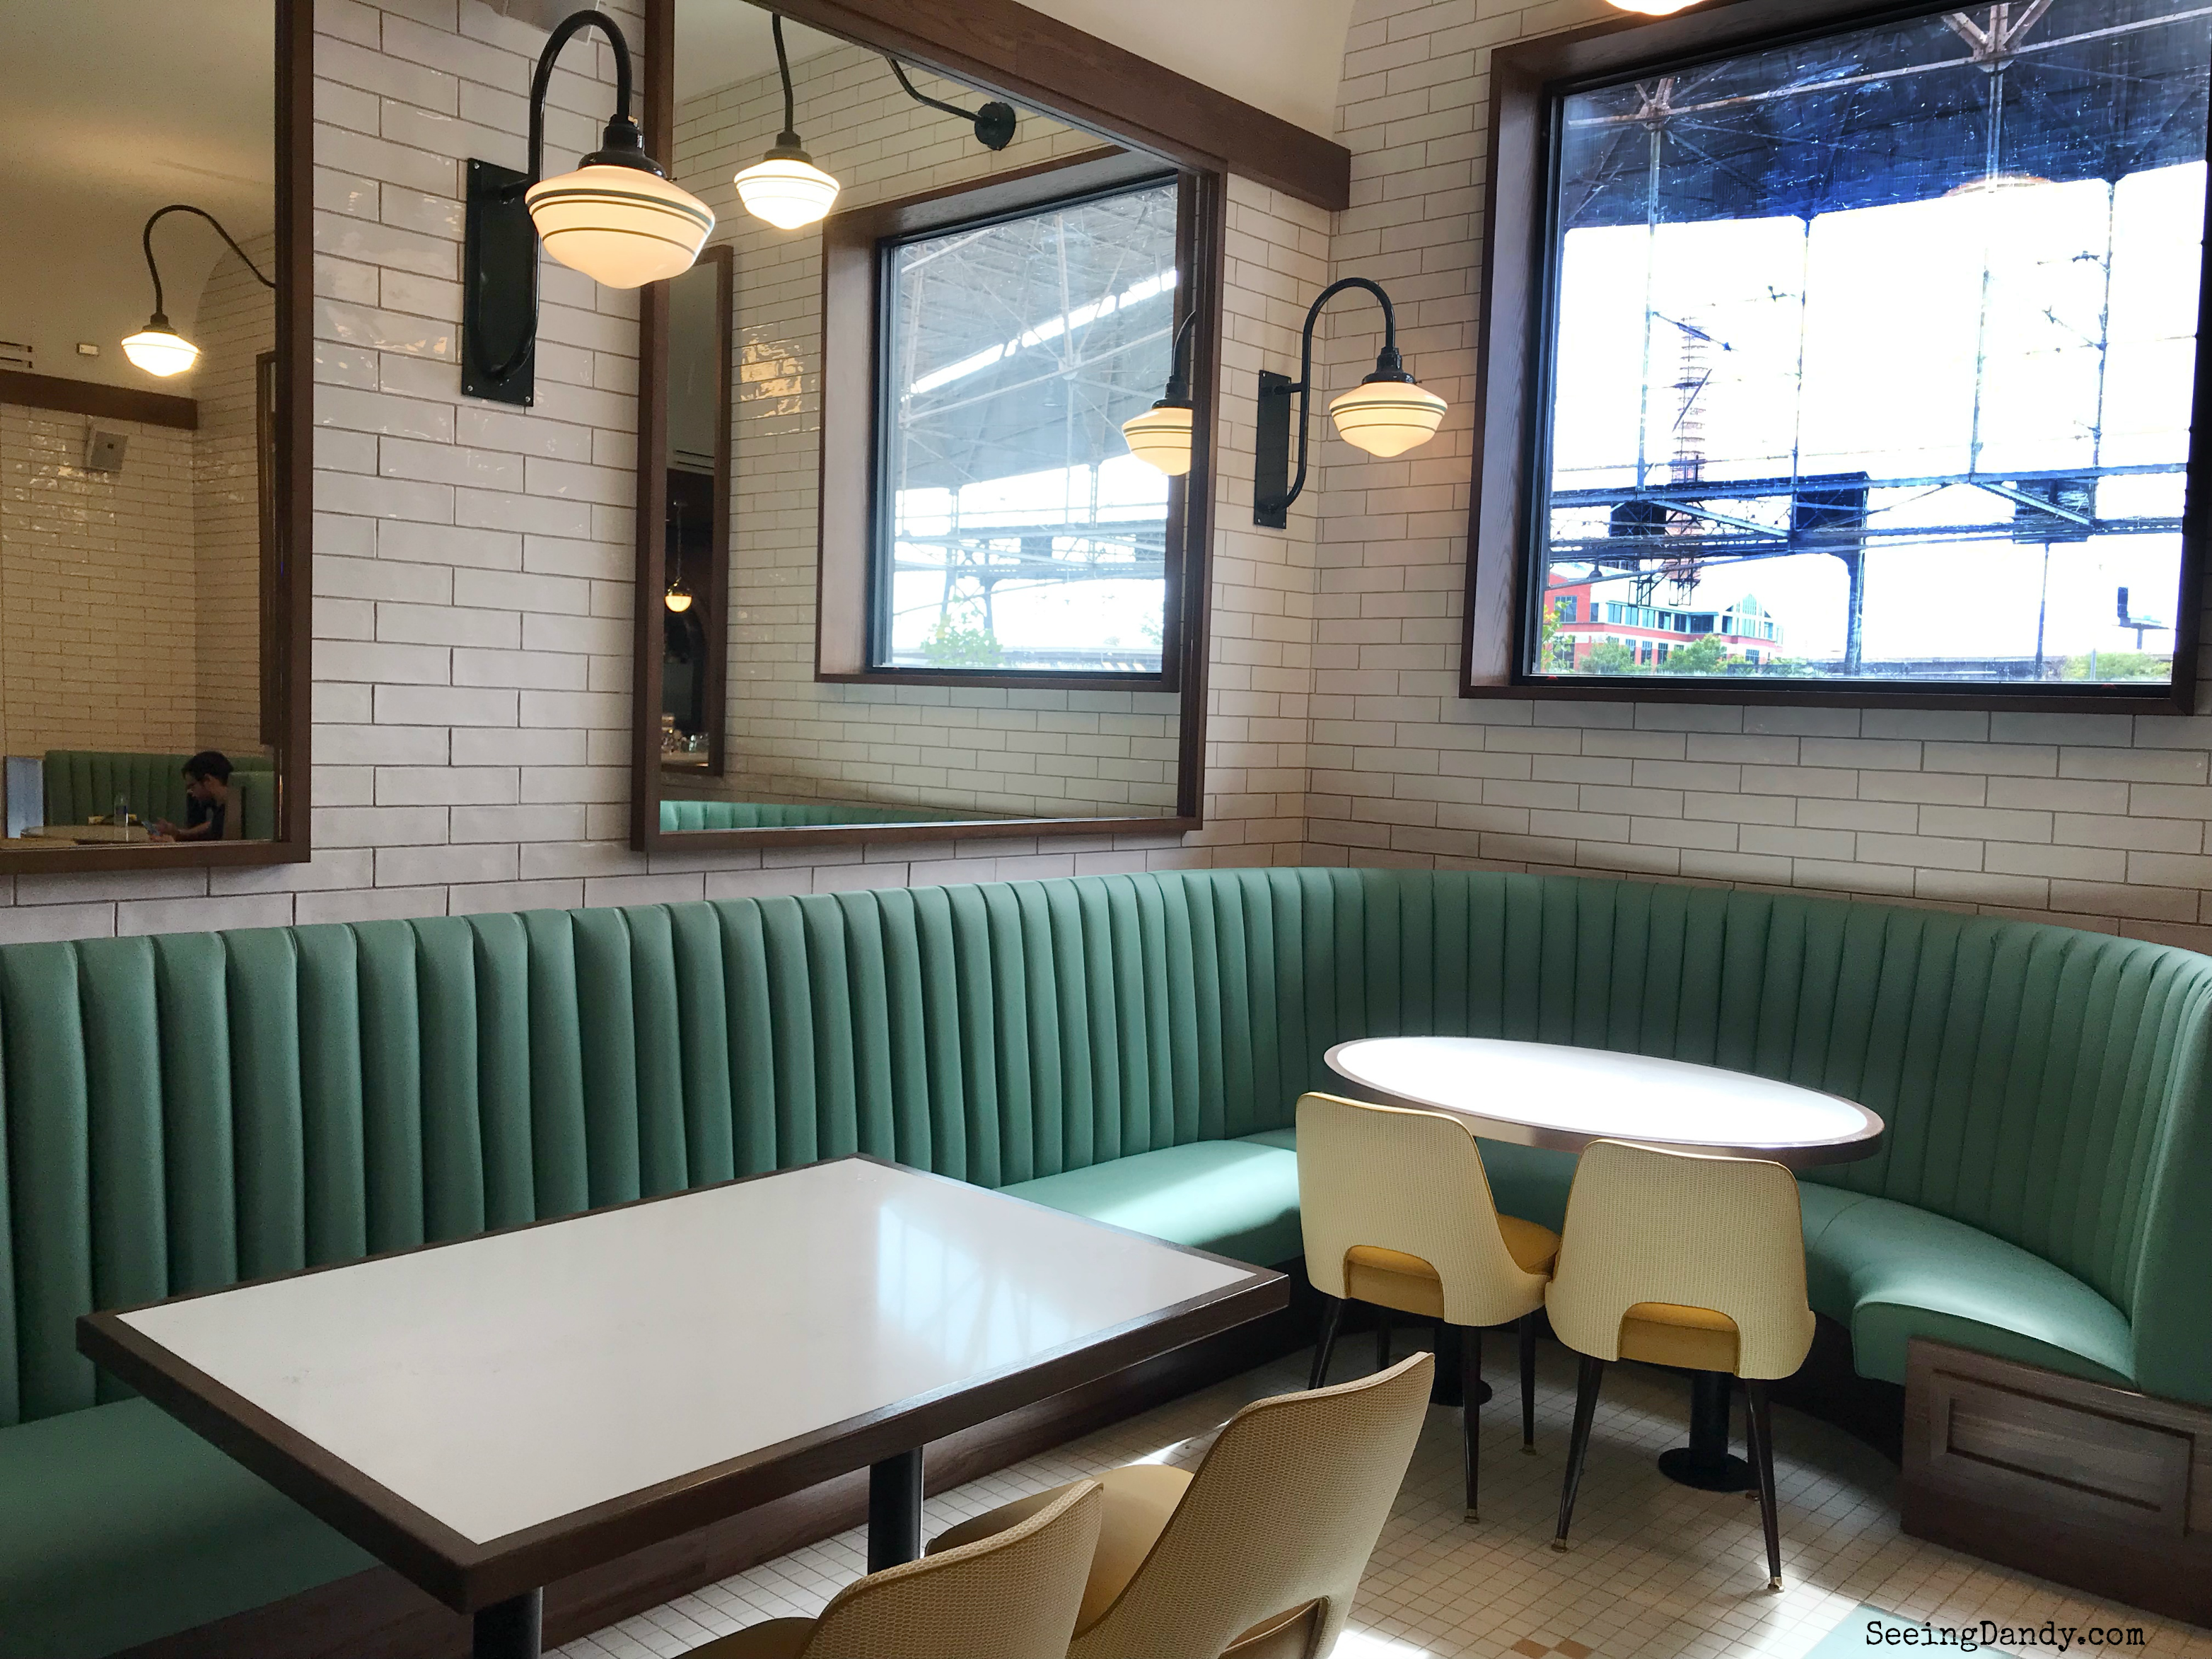 Vintage eating area with mint green booths and retro white subway tile.